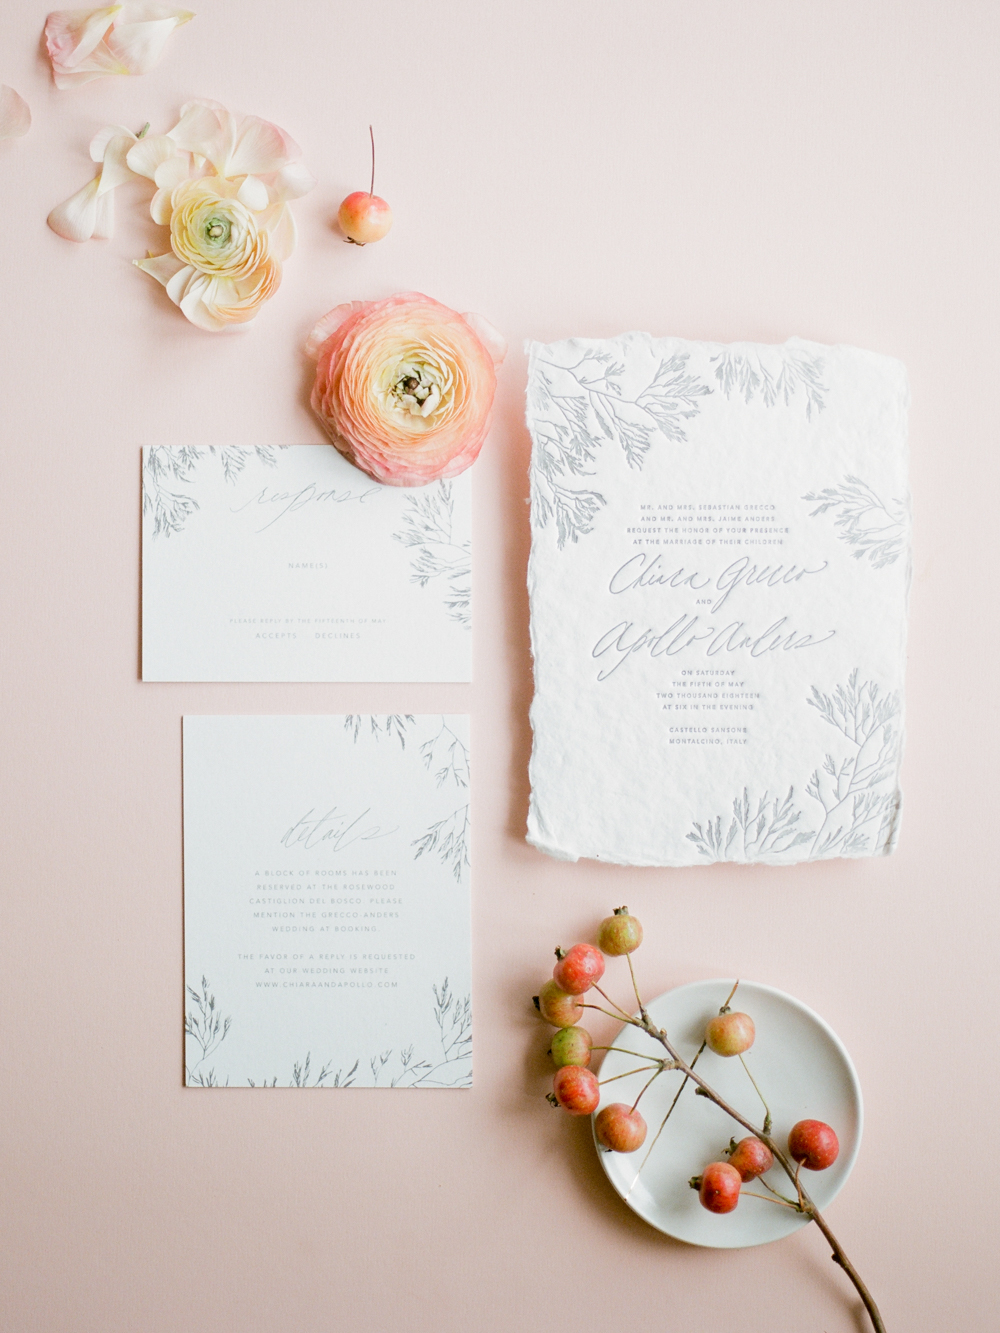 film wedding photographer - Houston wedding photographer - intimate wedding photographer - Christine Gosch - fall wedding inspiration - blush fall wedding - wedding flowers - fall wedding flowers - wedding table inspo-3- Maxit Flower Design.jpg